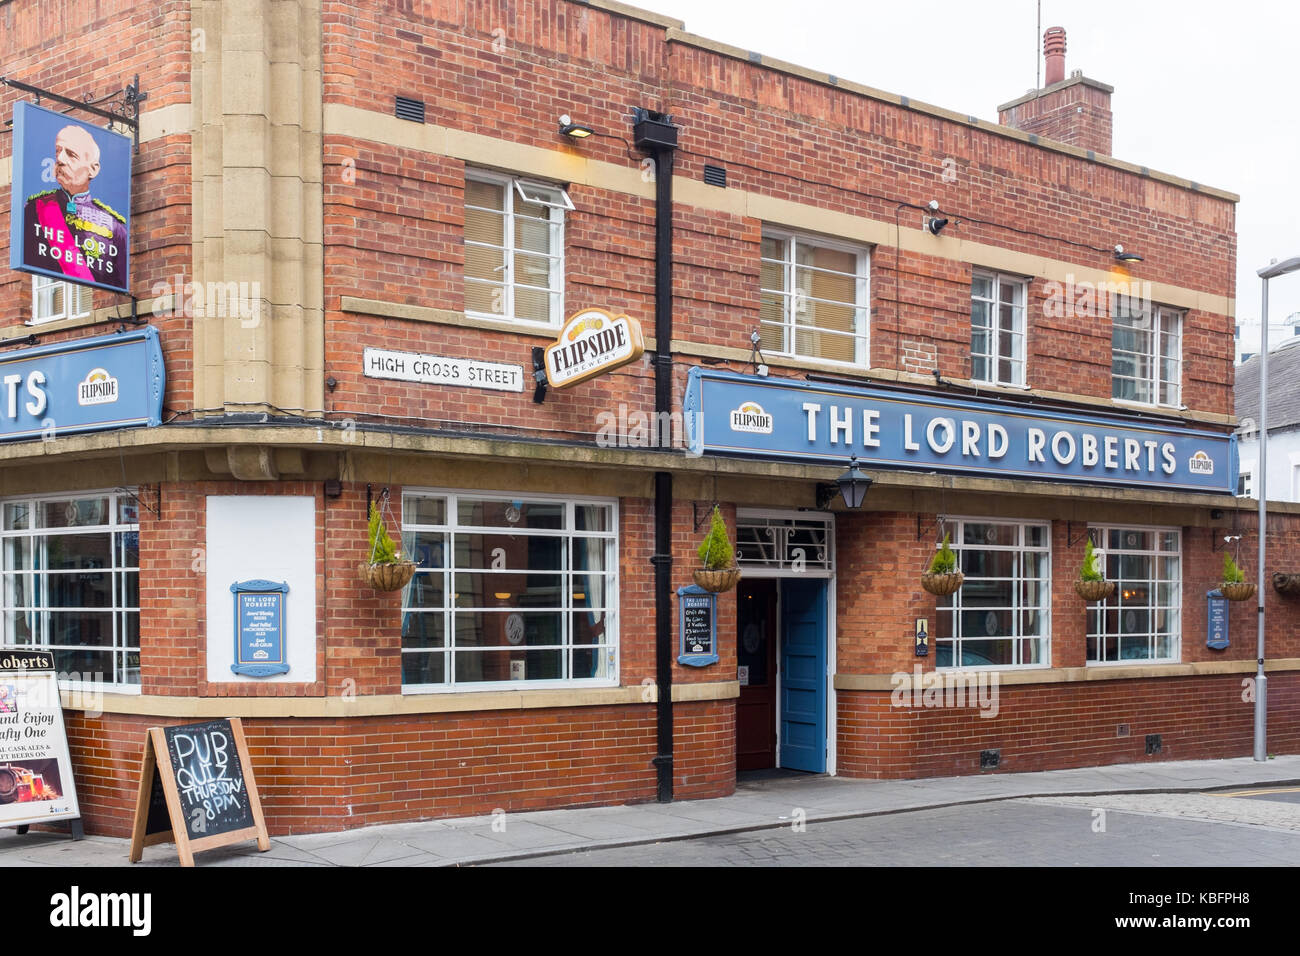 The Lord Roberts pub and bar in Broad Street, Nottingham - Stock Image